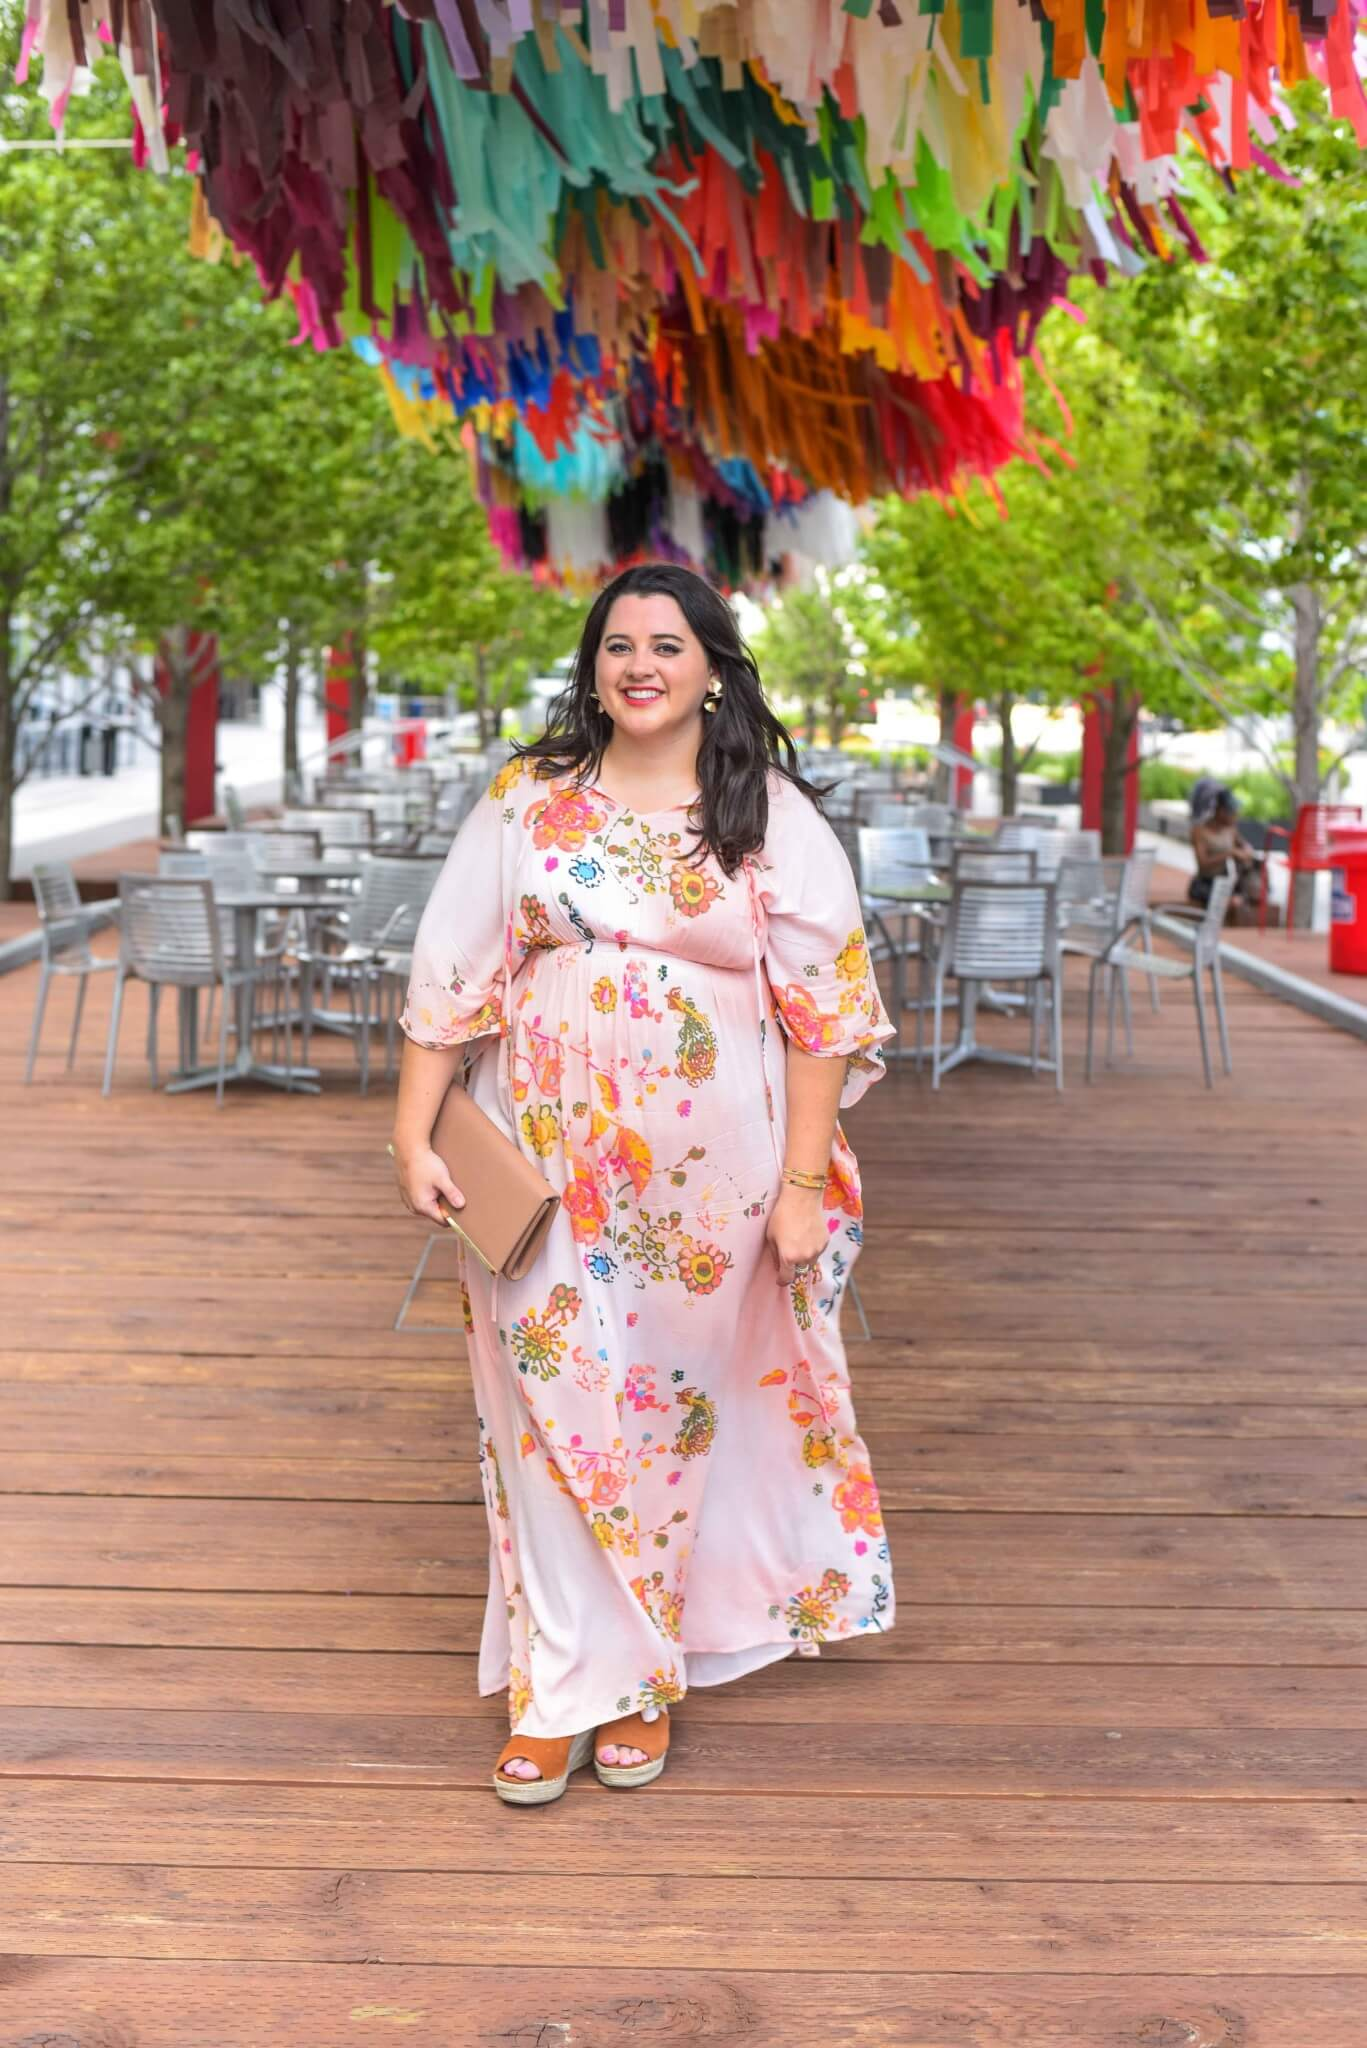 Looking to have a closet with endless possibilities? Check out Gwynnie Bee, a plus size clothing subscription service, which has this dress and so many other items that will fit perfectly into your everyday life. #maxidress #weekendwear #plussize  - Gwynnie Bee outfit by popular Houston fashion blogger Something Gold, Something Blue